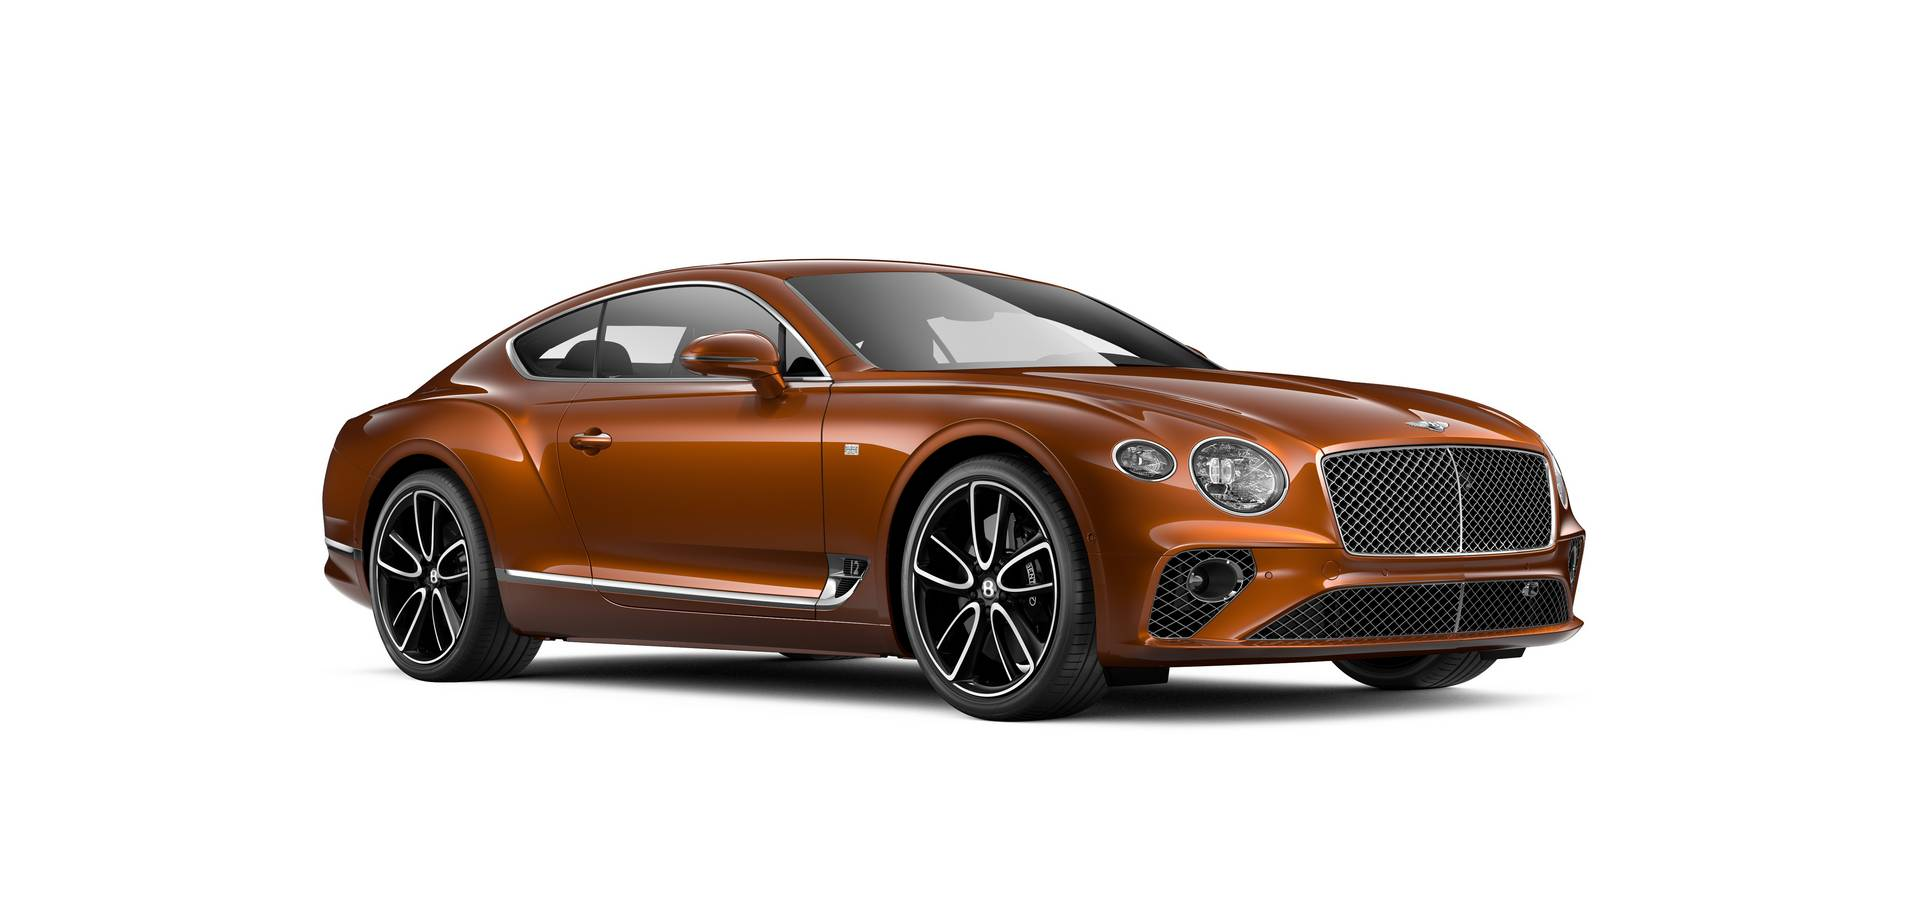 Official: 2018 Bentley Continental GT First Edition